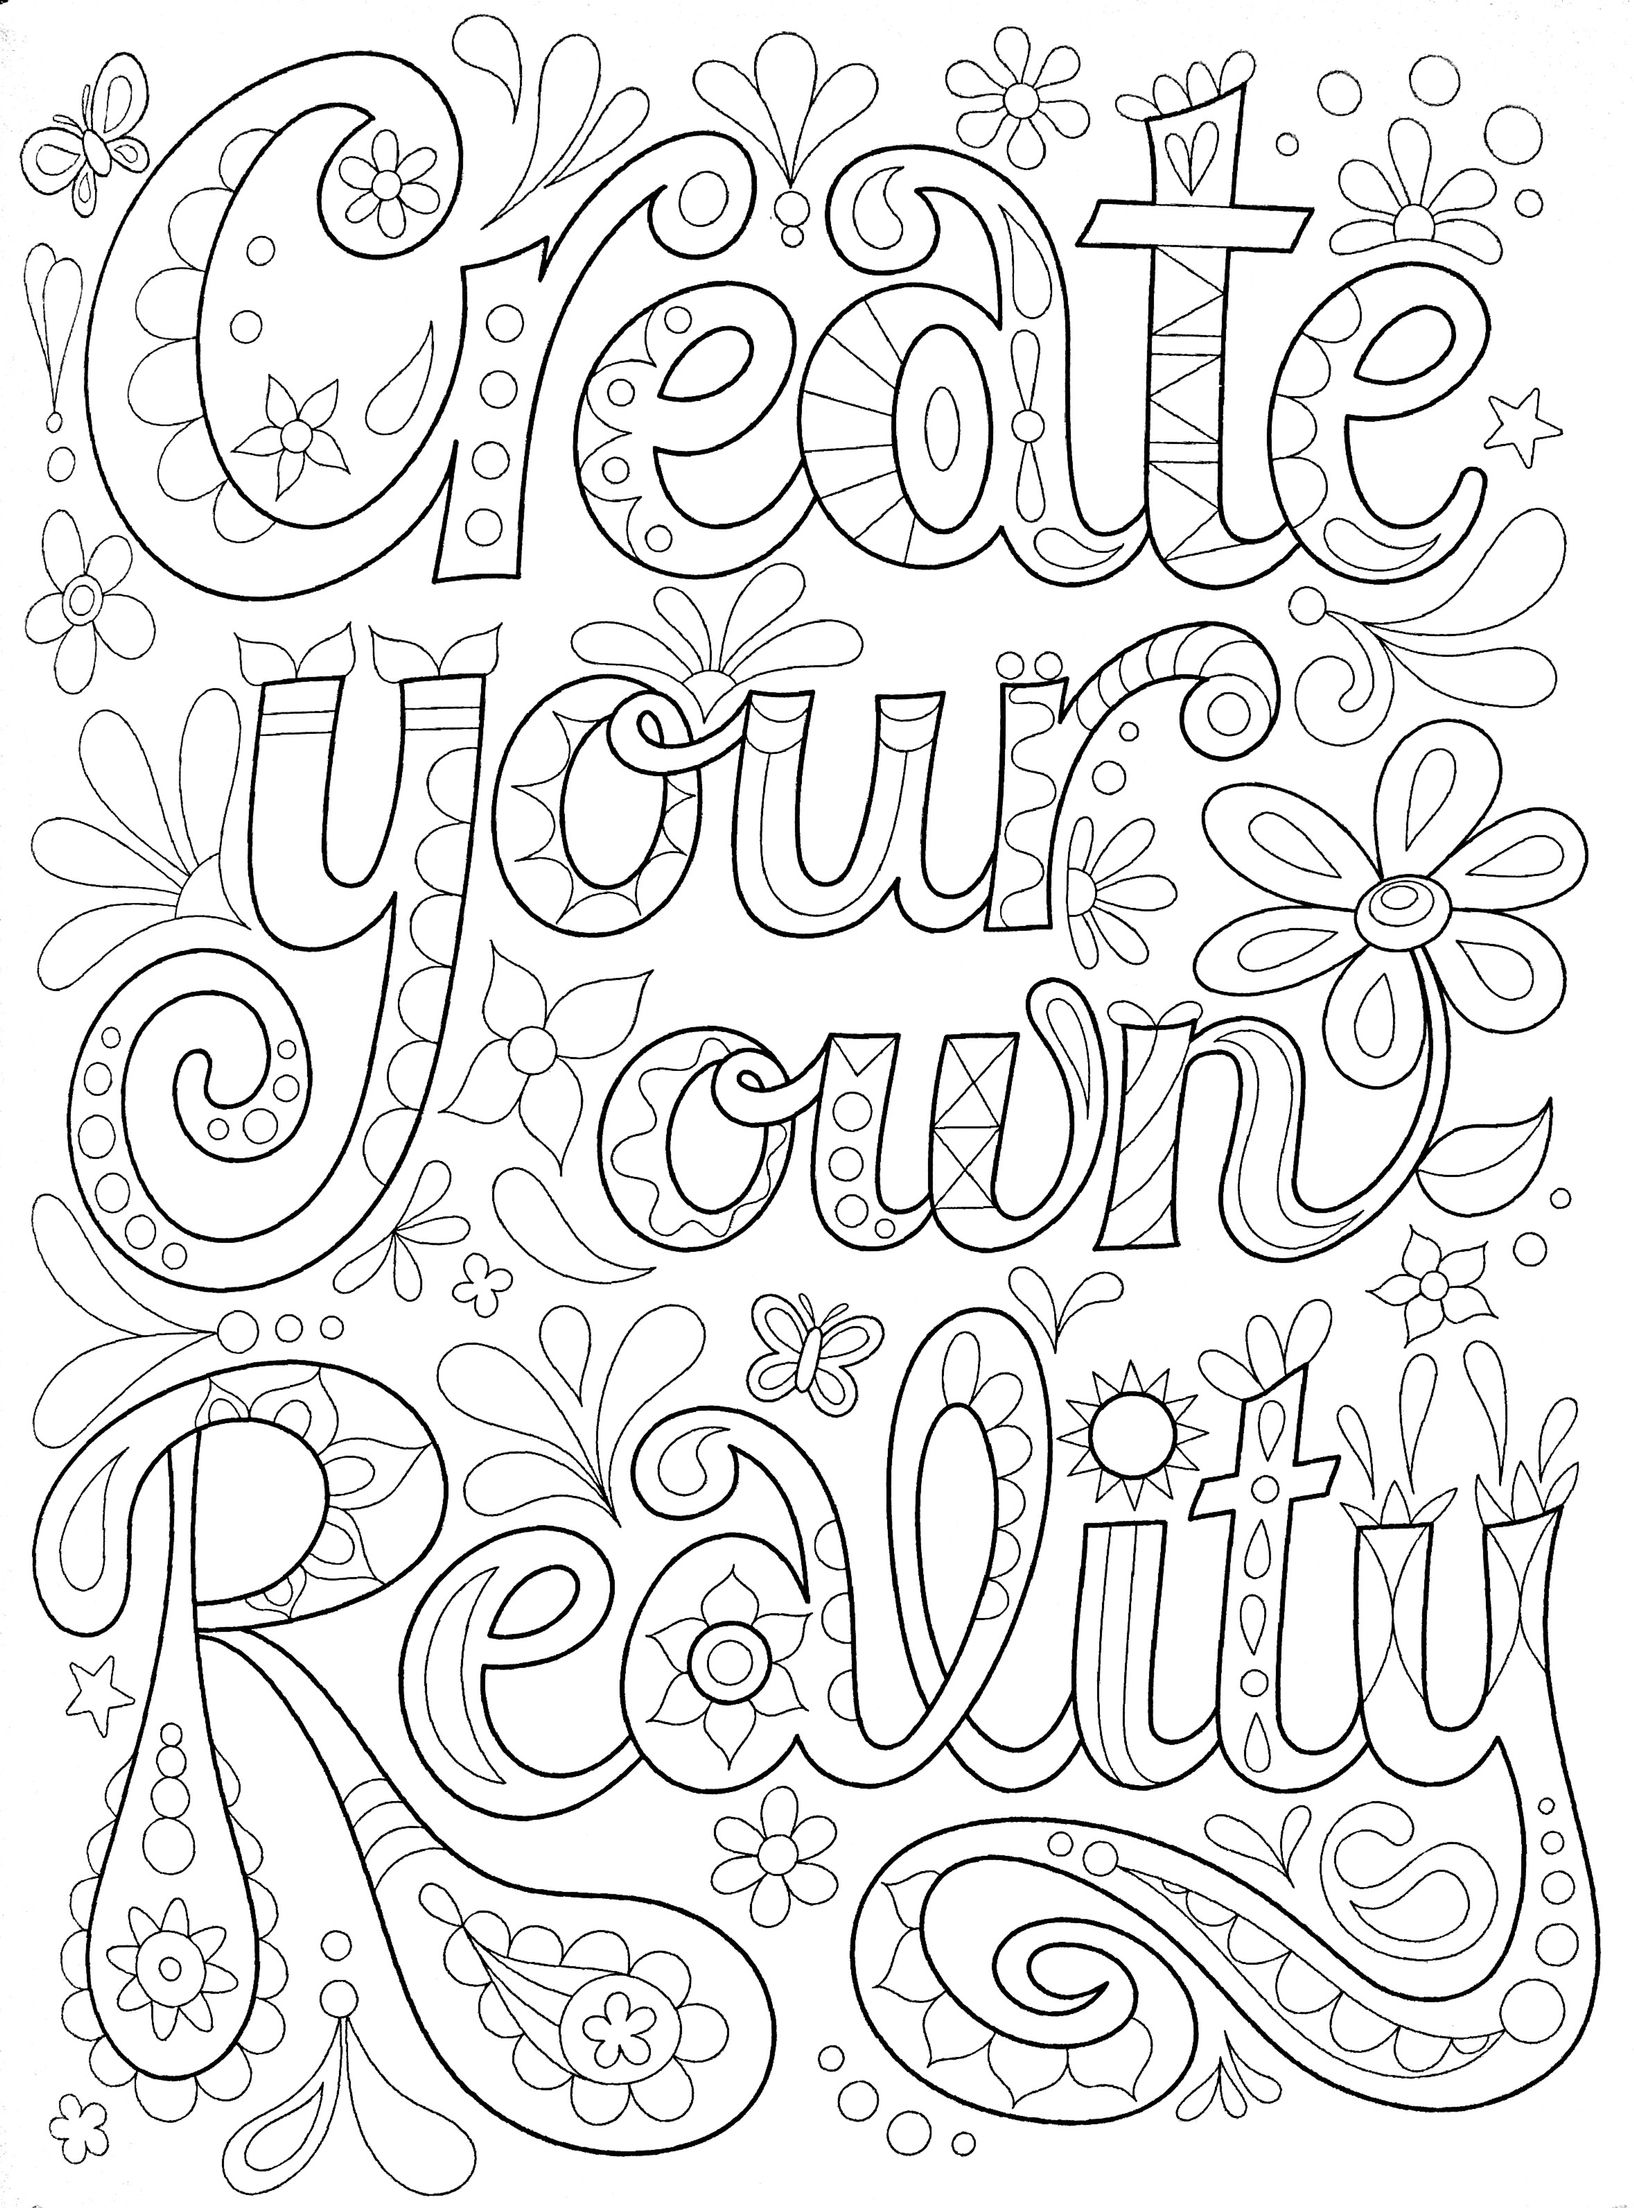 free coloring pages for adults printable printable coloring pages for adults 15 free designs free adults pages for coloring printable